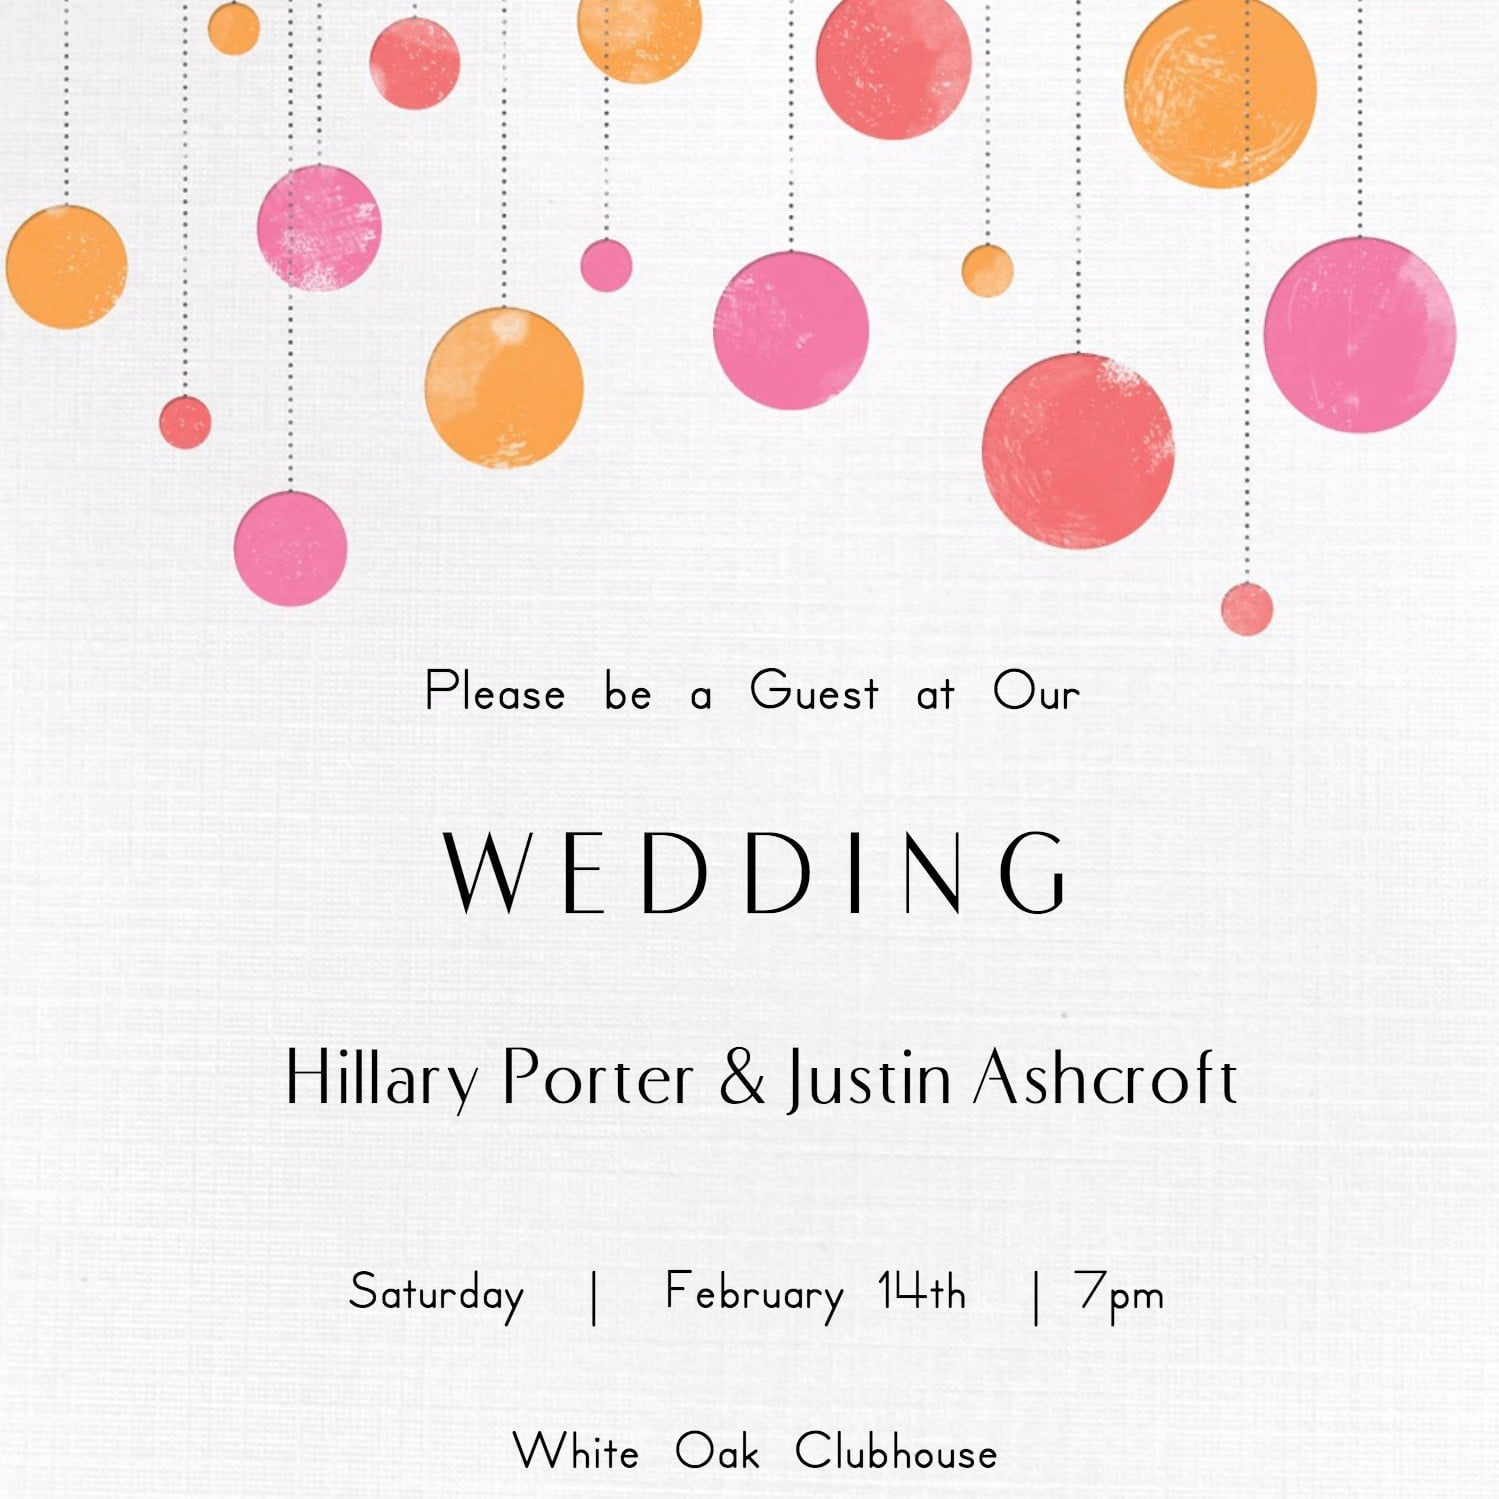 Free Printable Wedding Invitations | Popsugar Smart Living - Free Printable Wedding Invitations